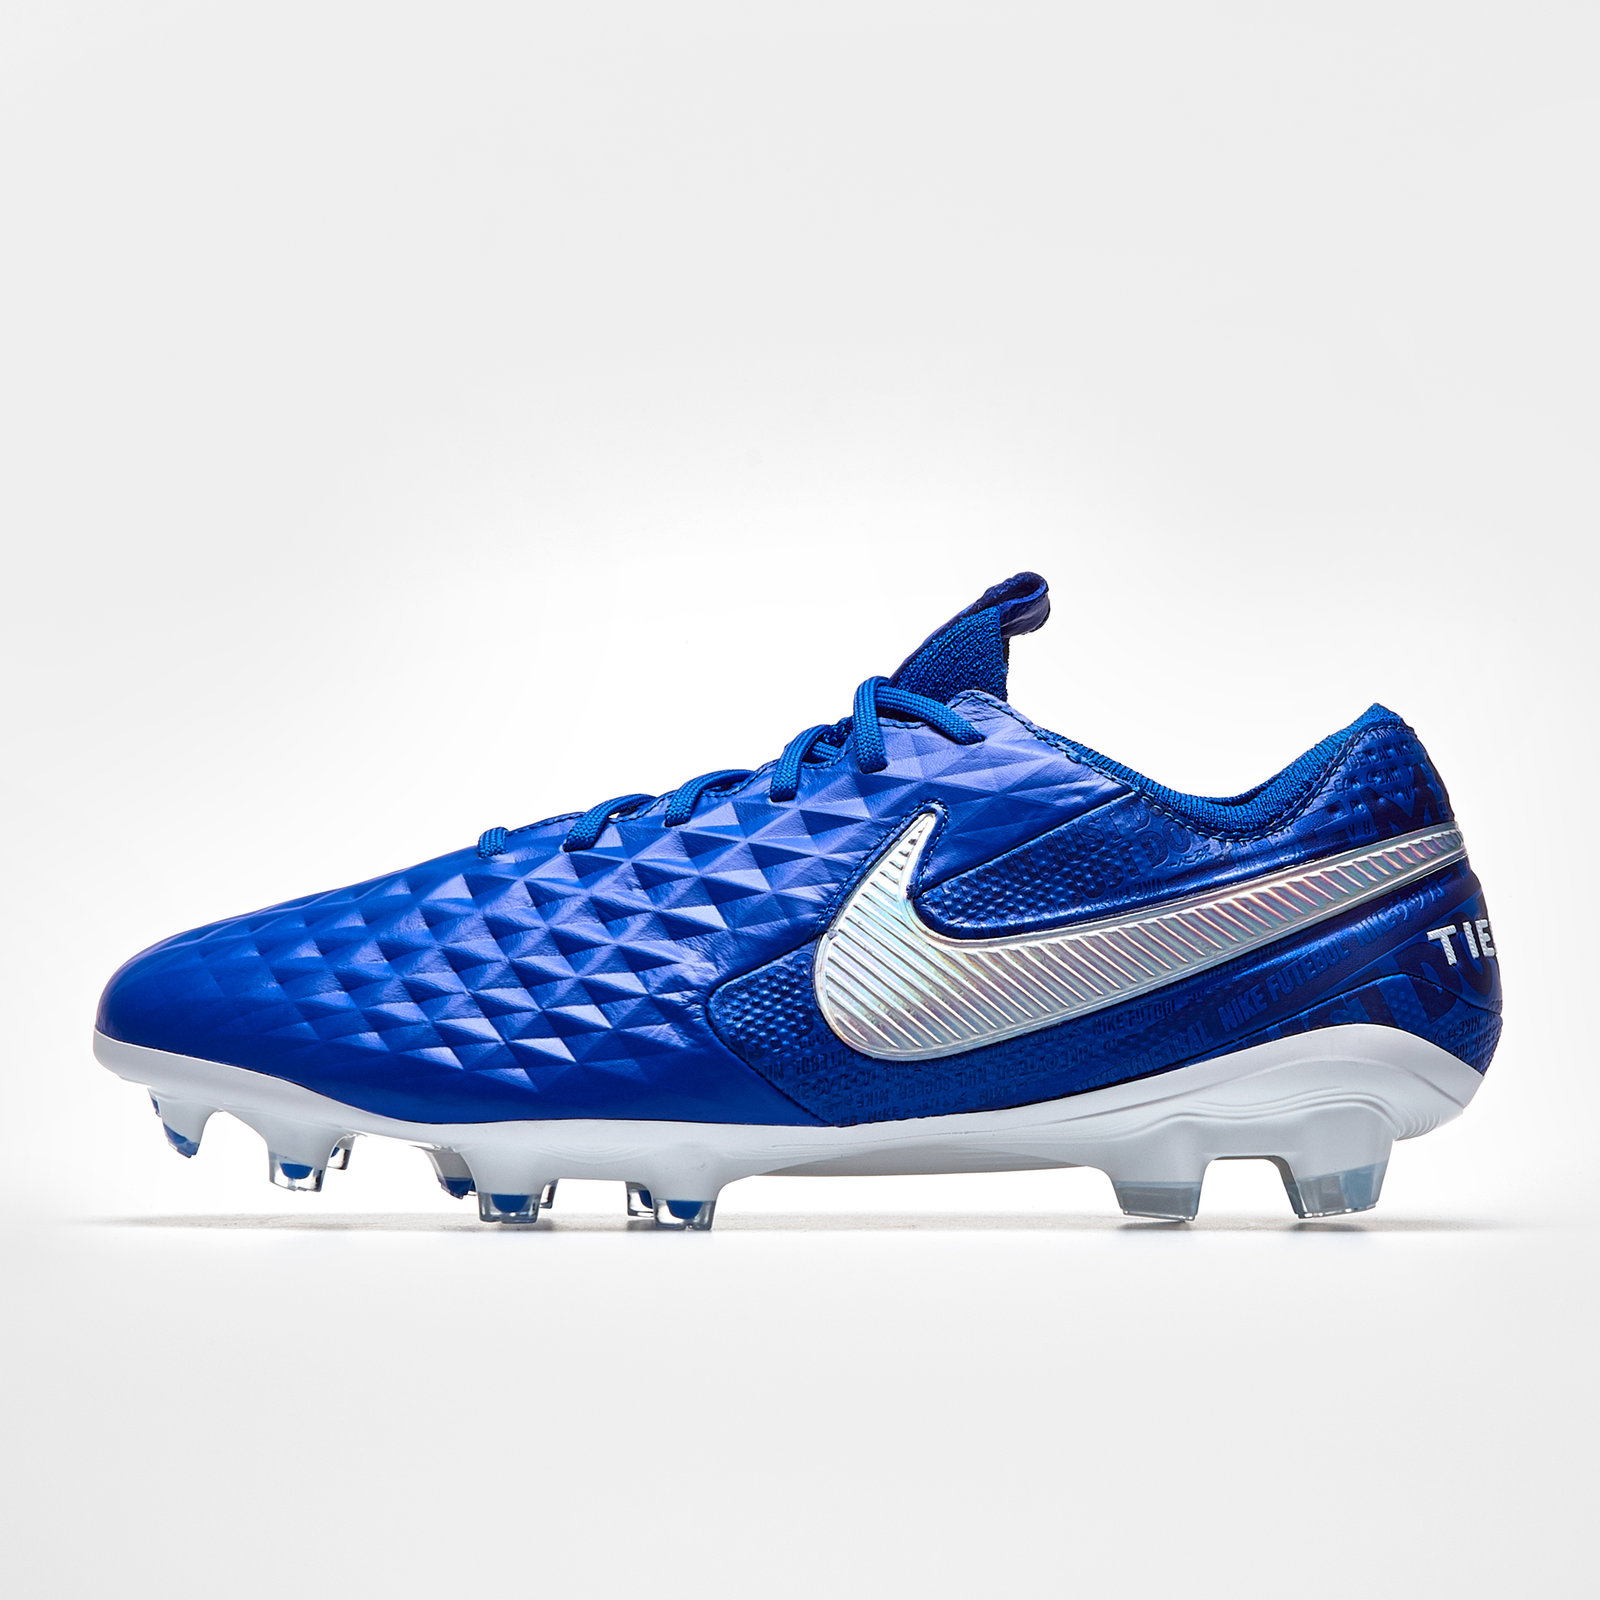 Tiempo Legend VIII Elite FG Football Boots